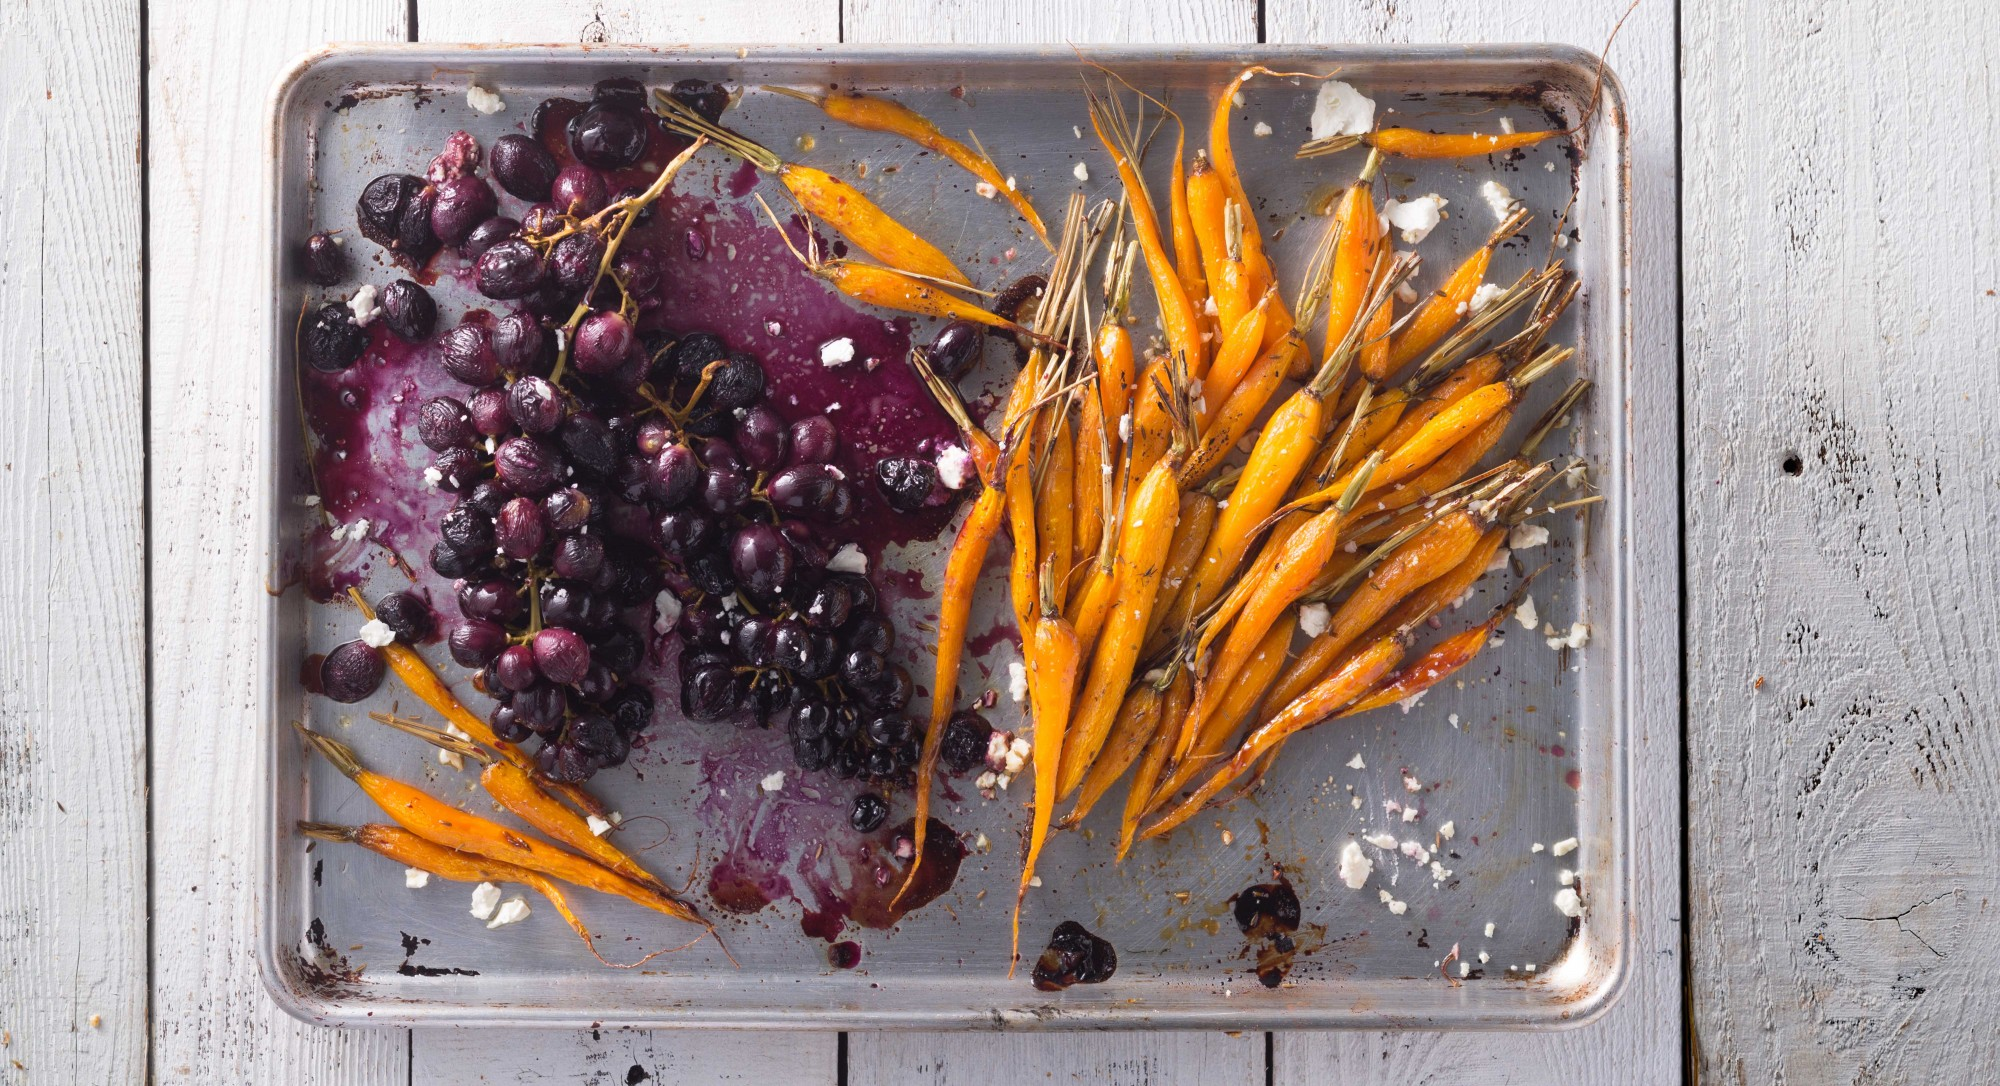 Roasted Carrots With Concord Grapes Make an Elegant, Easy Side Dish